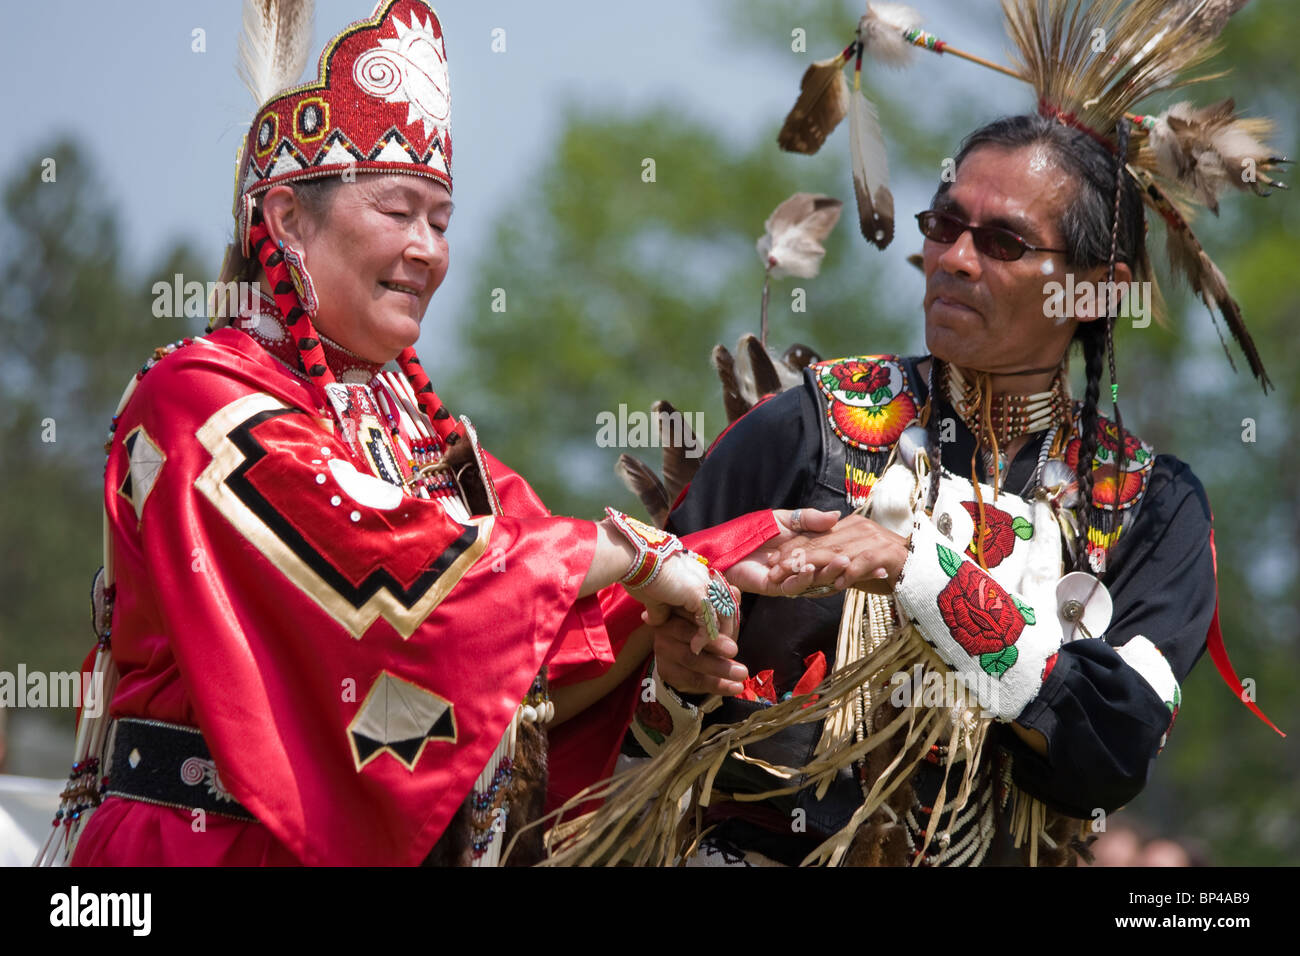 Native Americans in traditional regalia dance at the 8th Annual Redwing PowWow in Virginia Beach, Virginia. - Stock Image